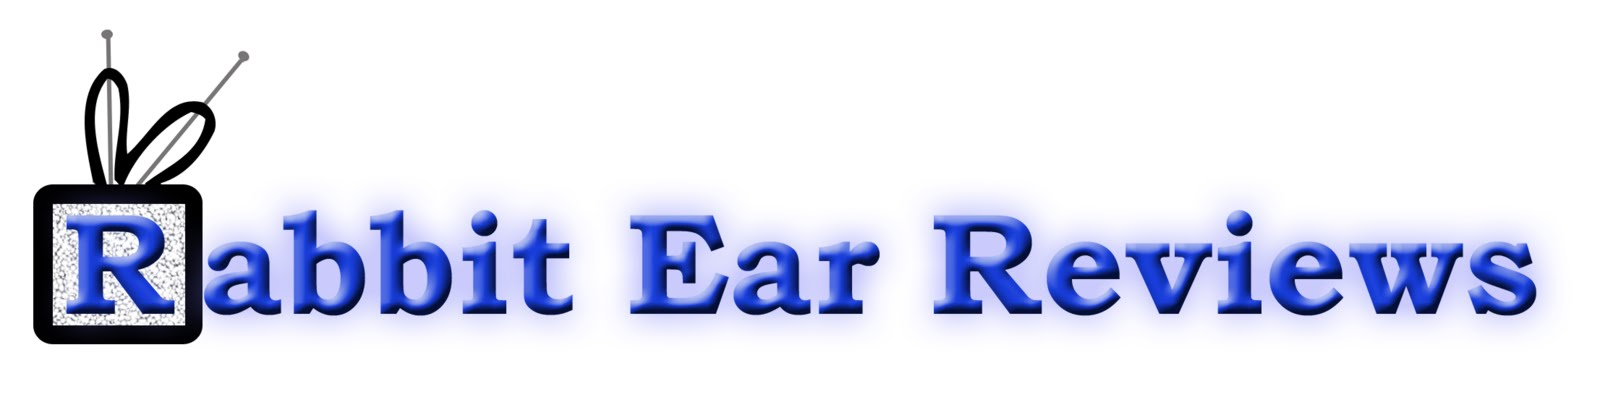 Rabbit Ear Reviews